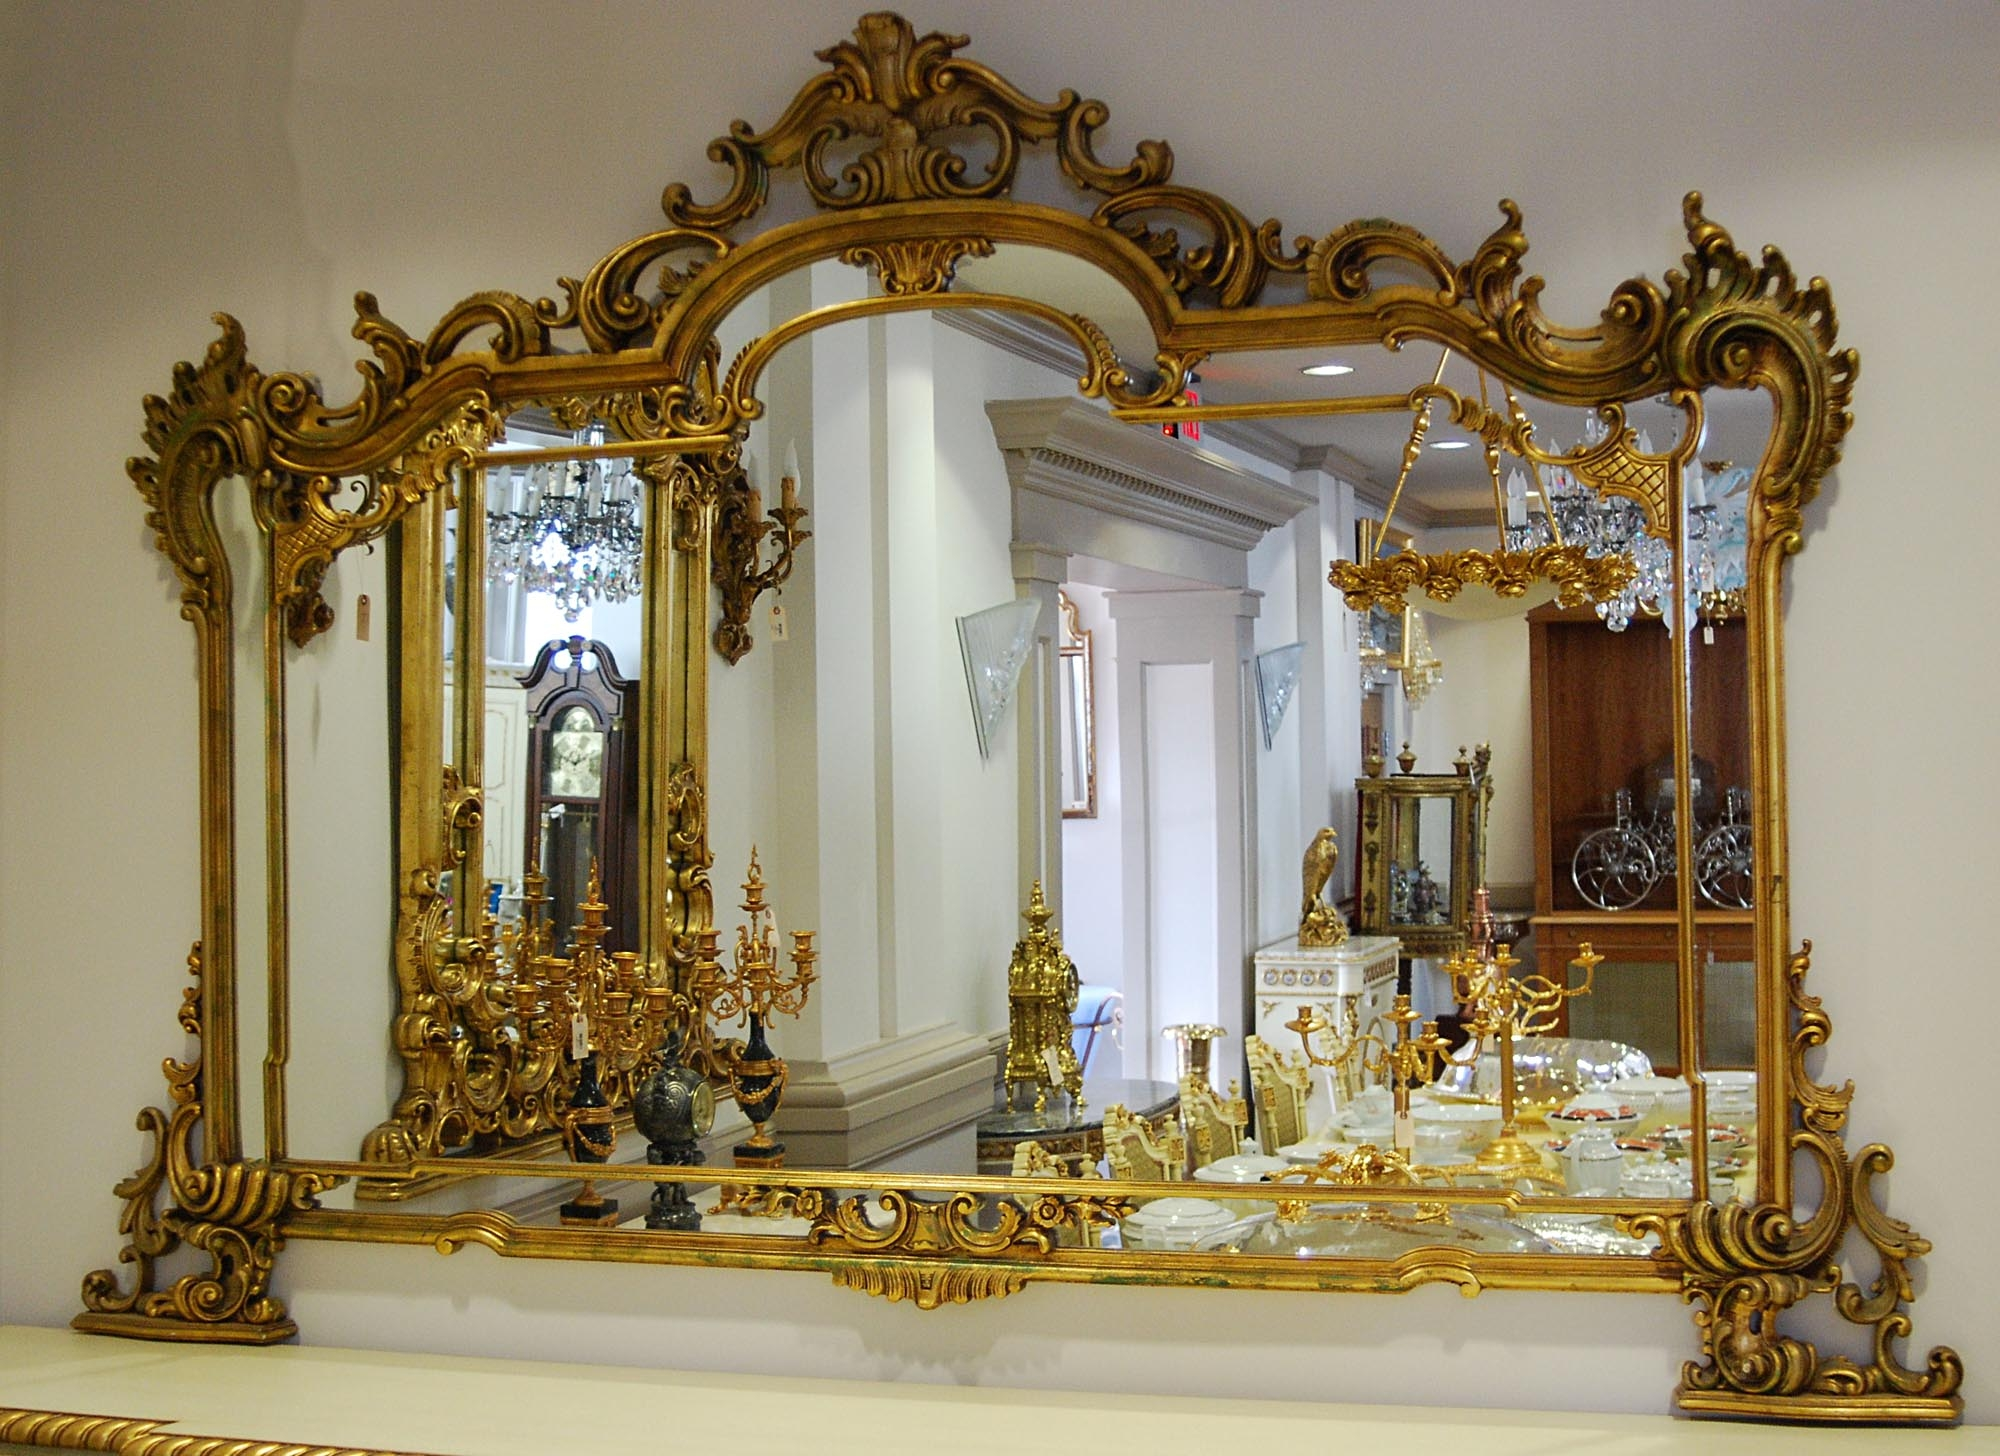 Italian Rococo Mirror Stuff To Buy Pinterest Architecture Throughout Rococo Mirror (Image 11 of 15)